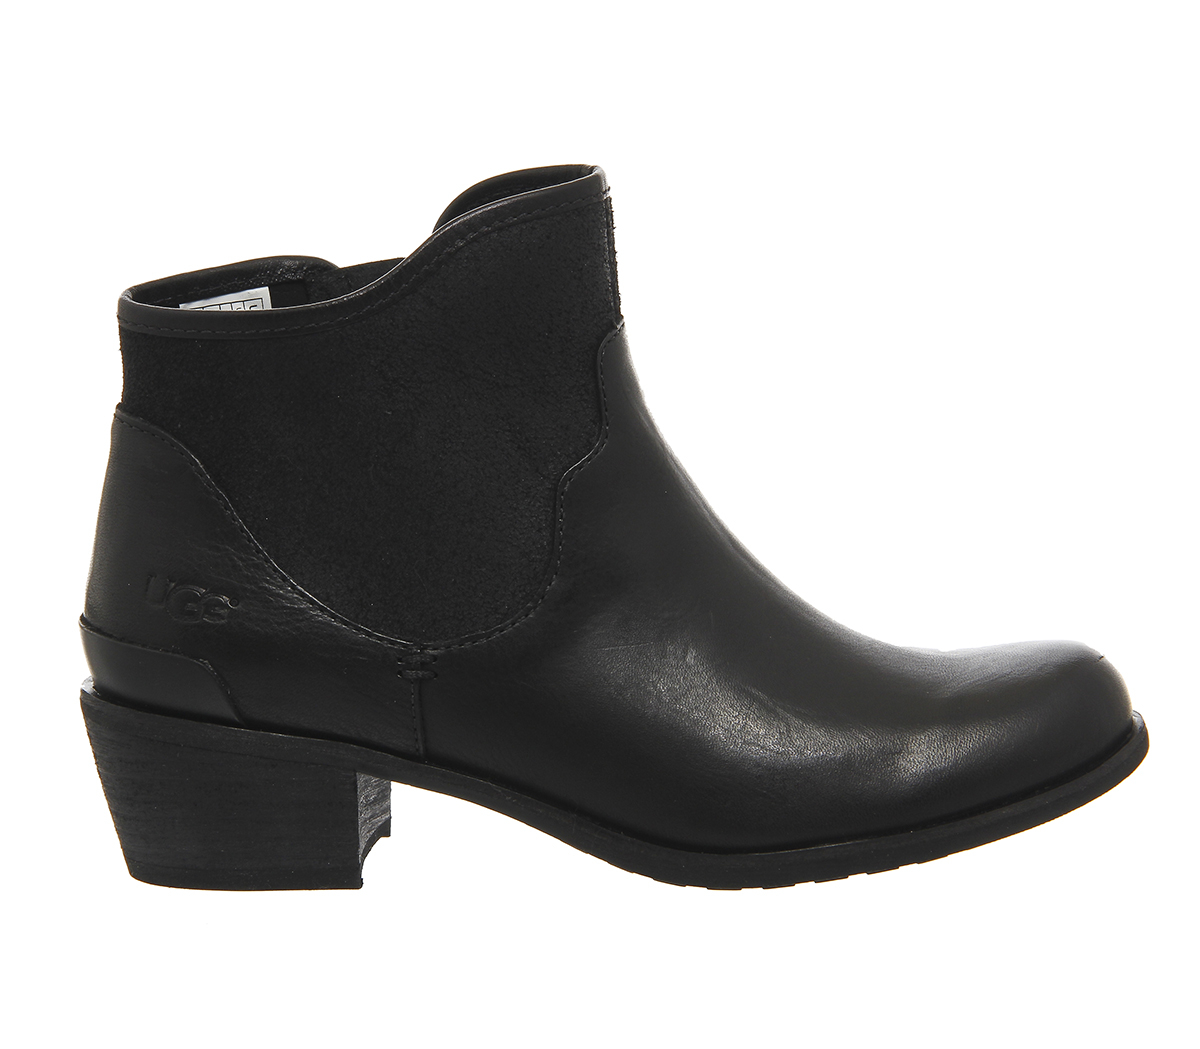 Free Shipping and Great Prices for Ankle Boots